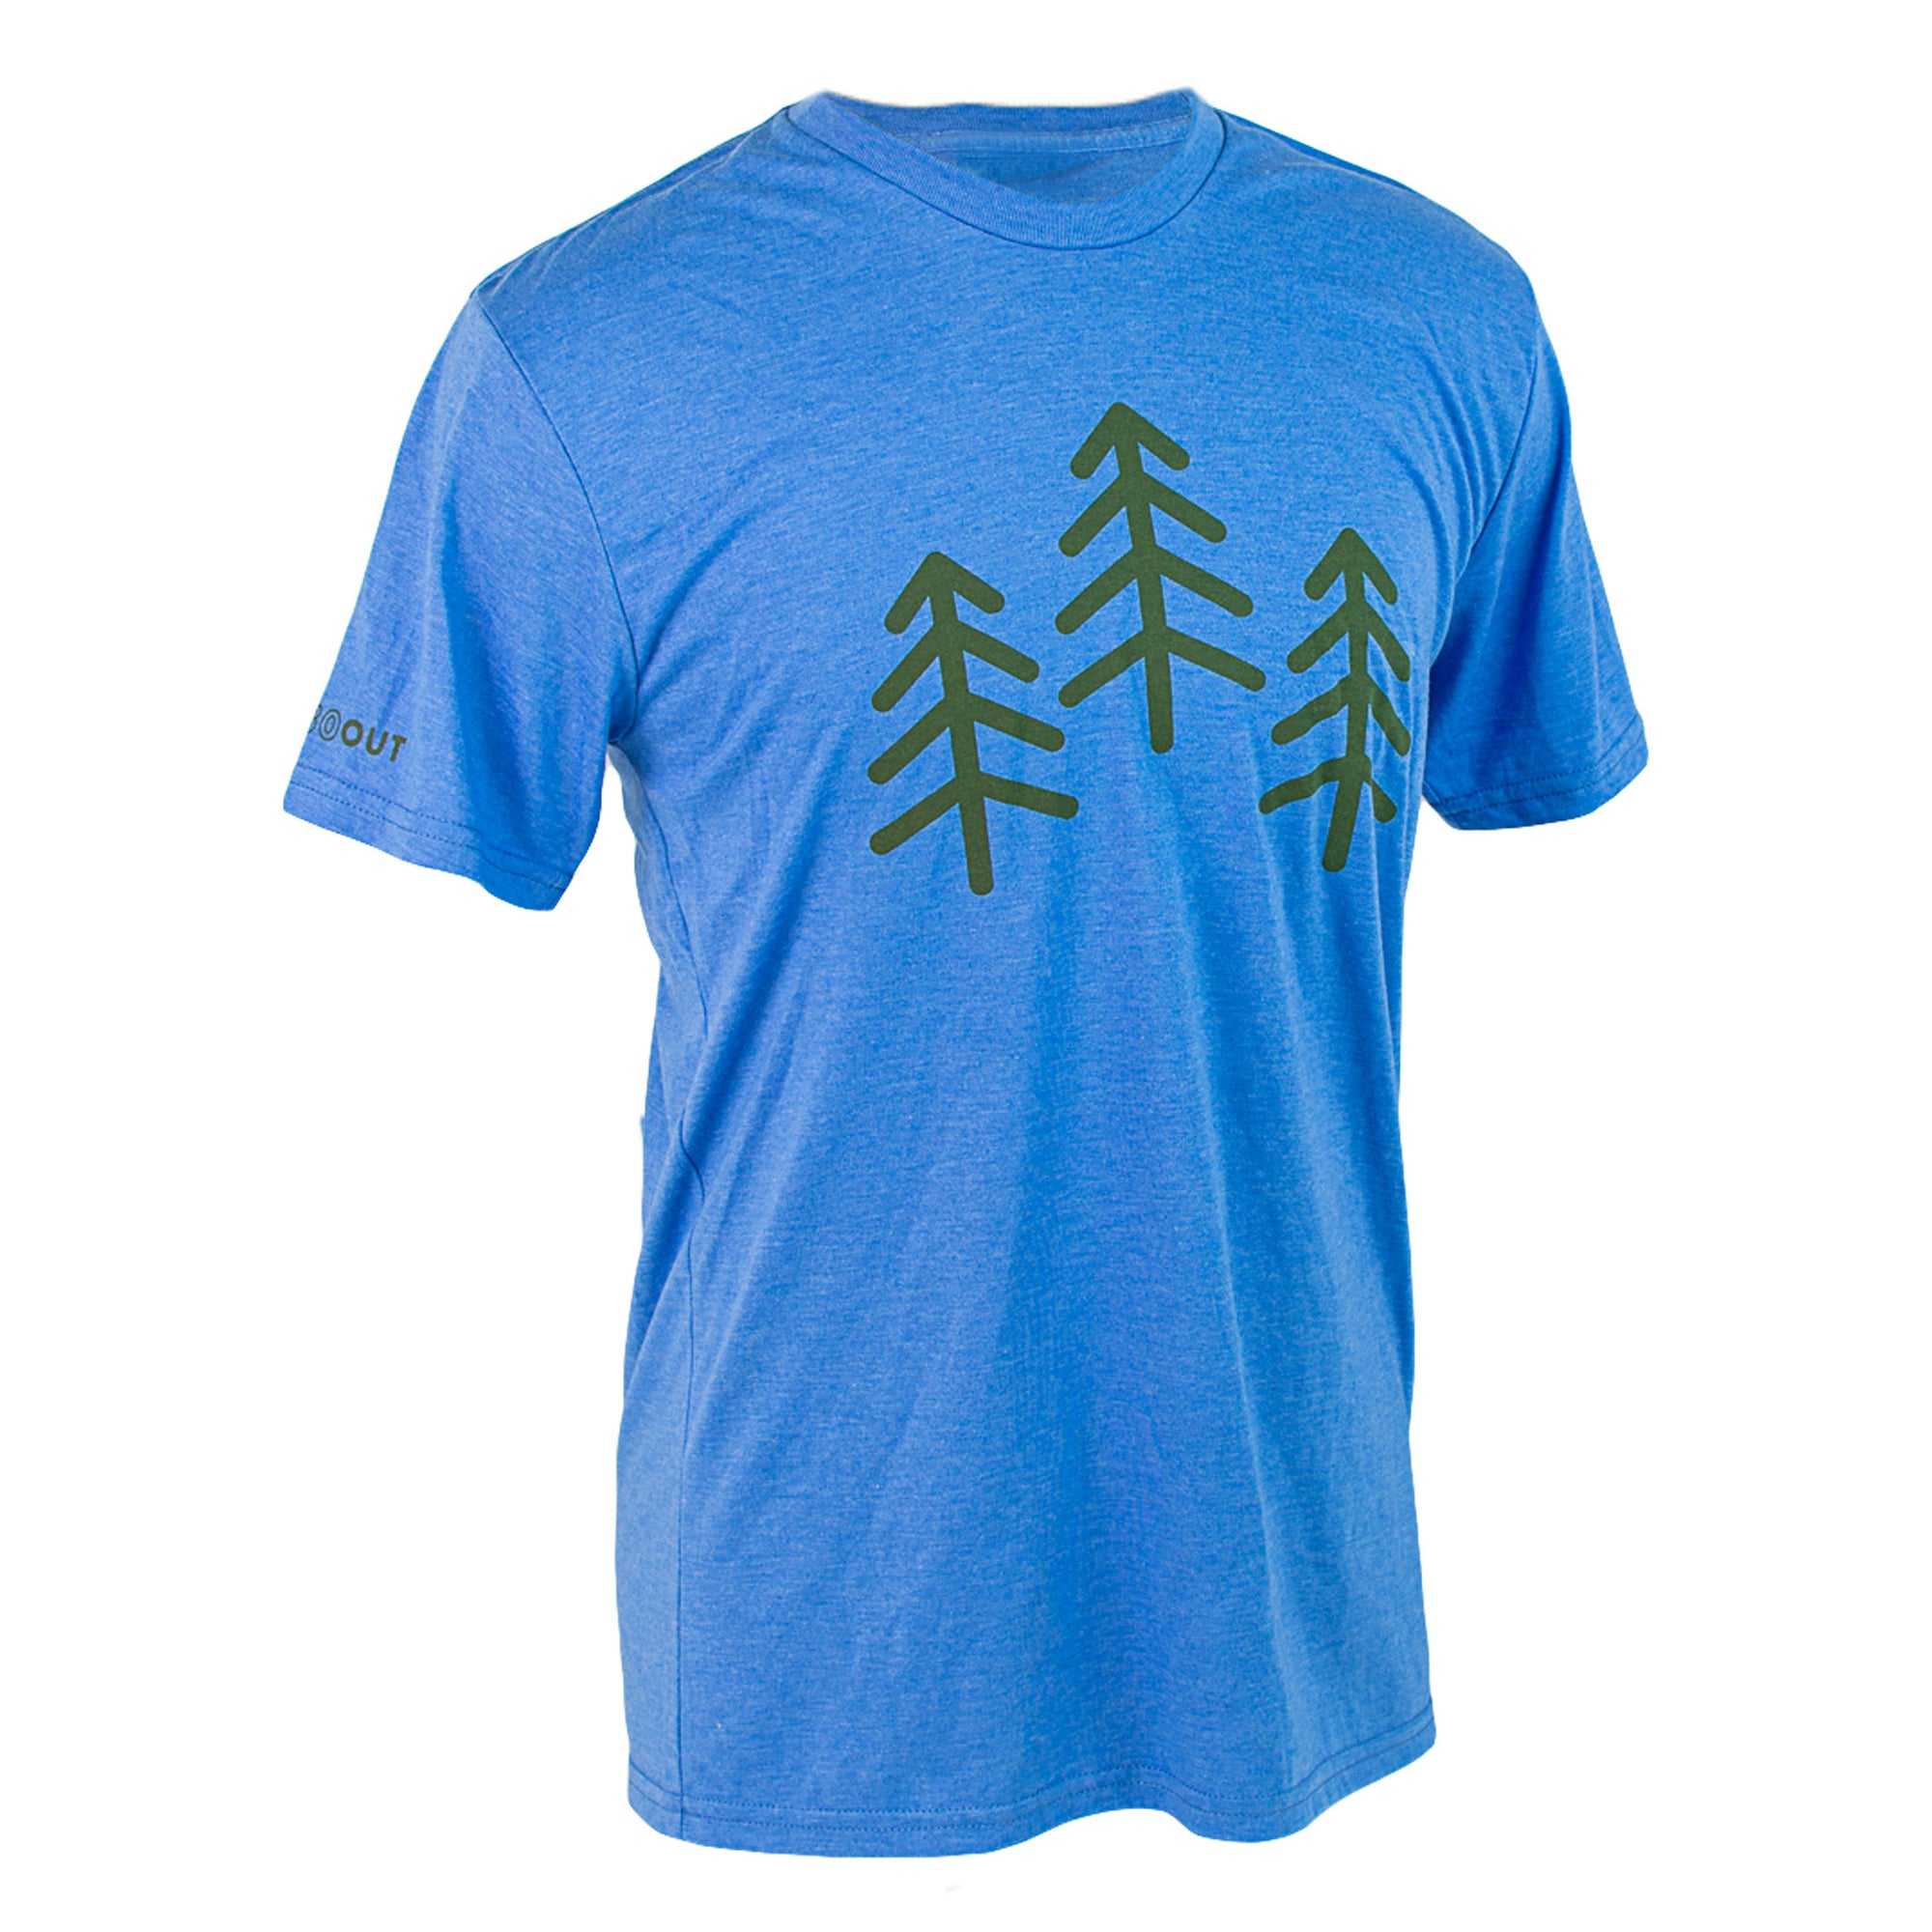 Men's 3 Trees T-Shirt